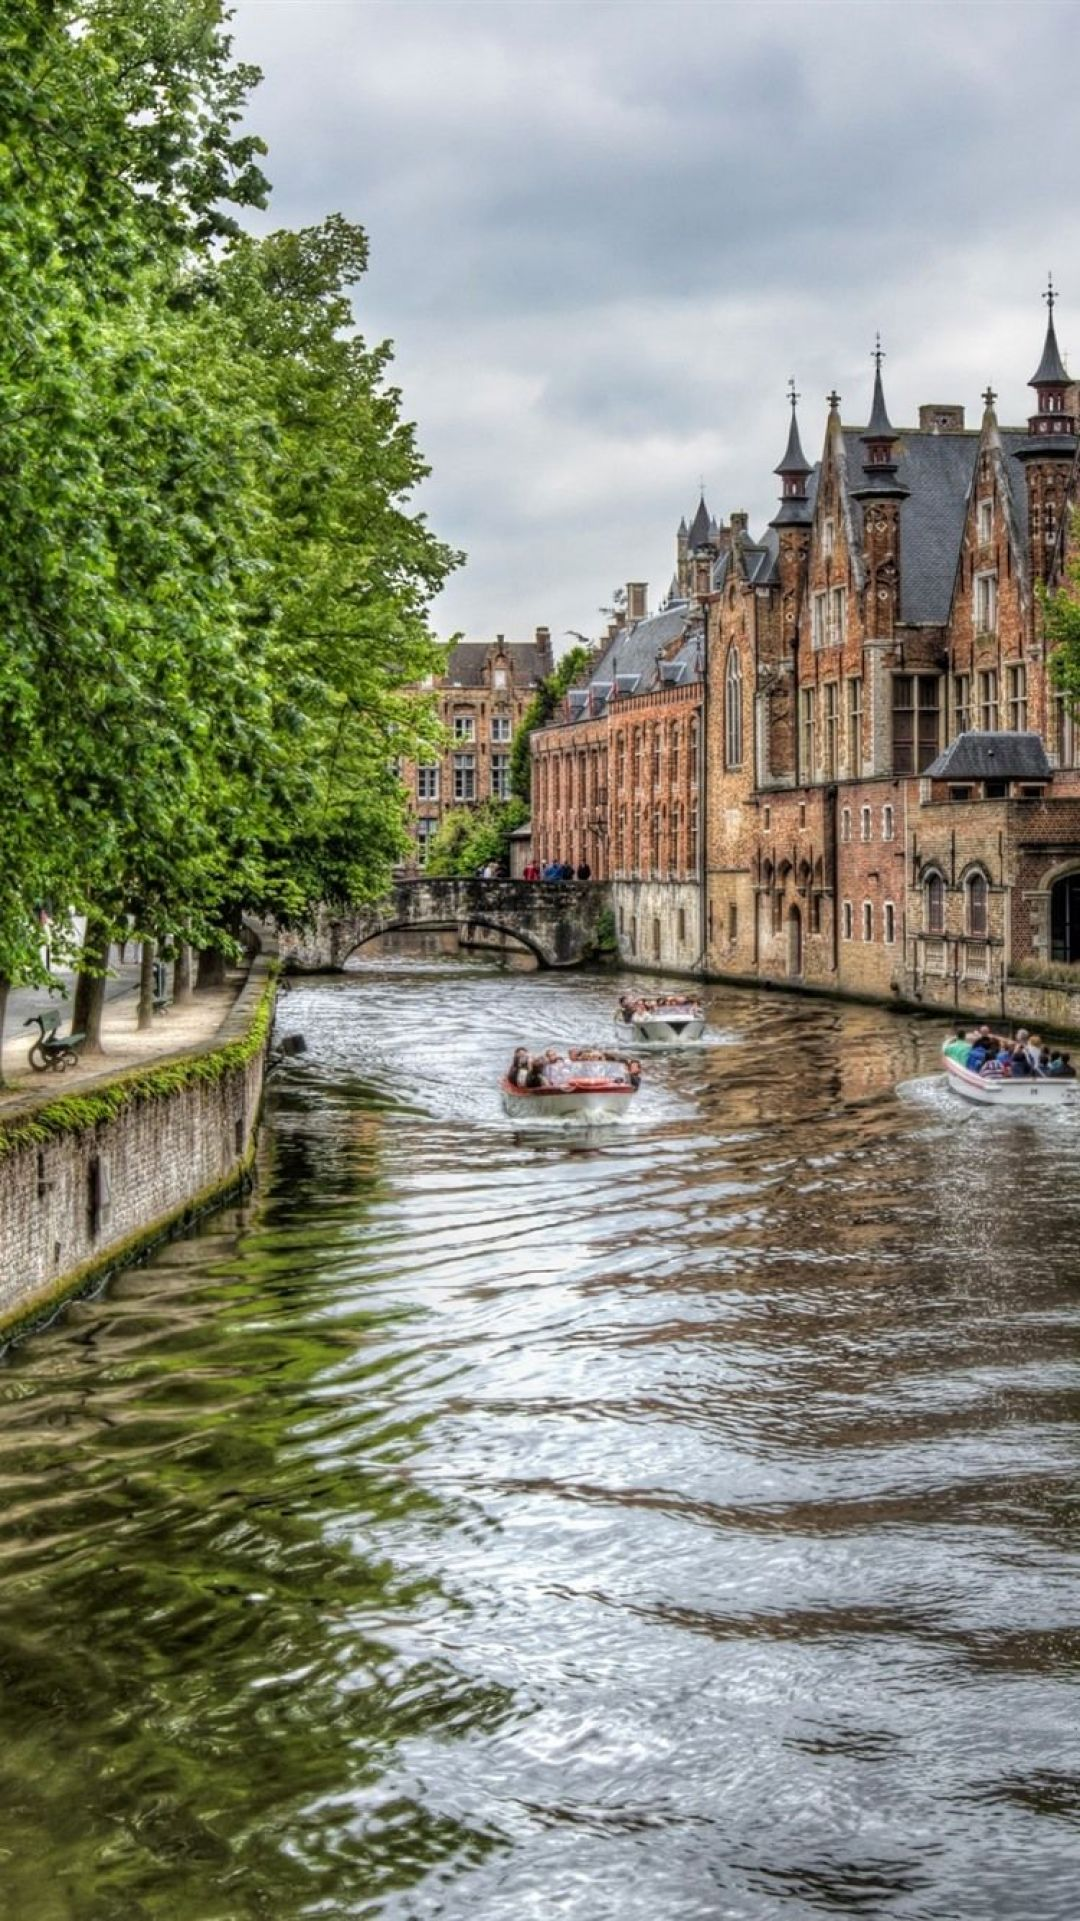 45 Bruges Hd Wallpapers Desktop Background Android Iphone 1080p 4k 1080x1921 2020